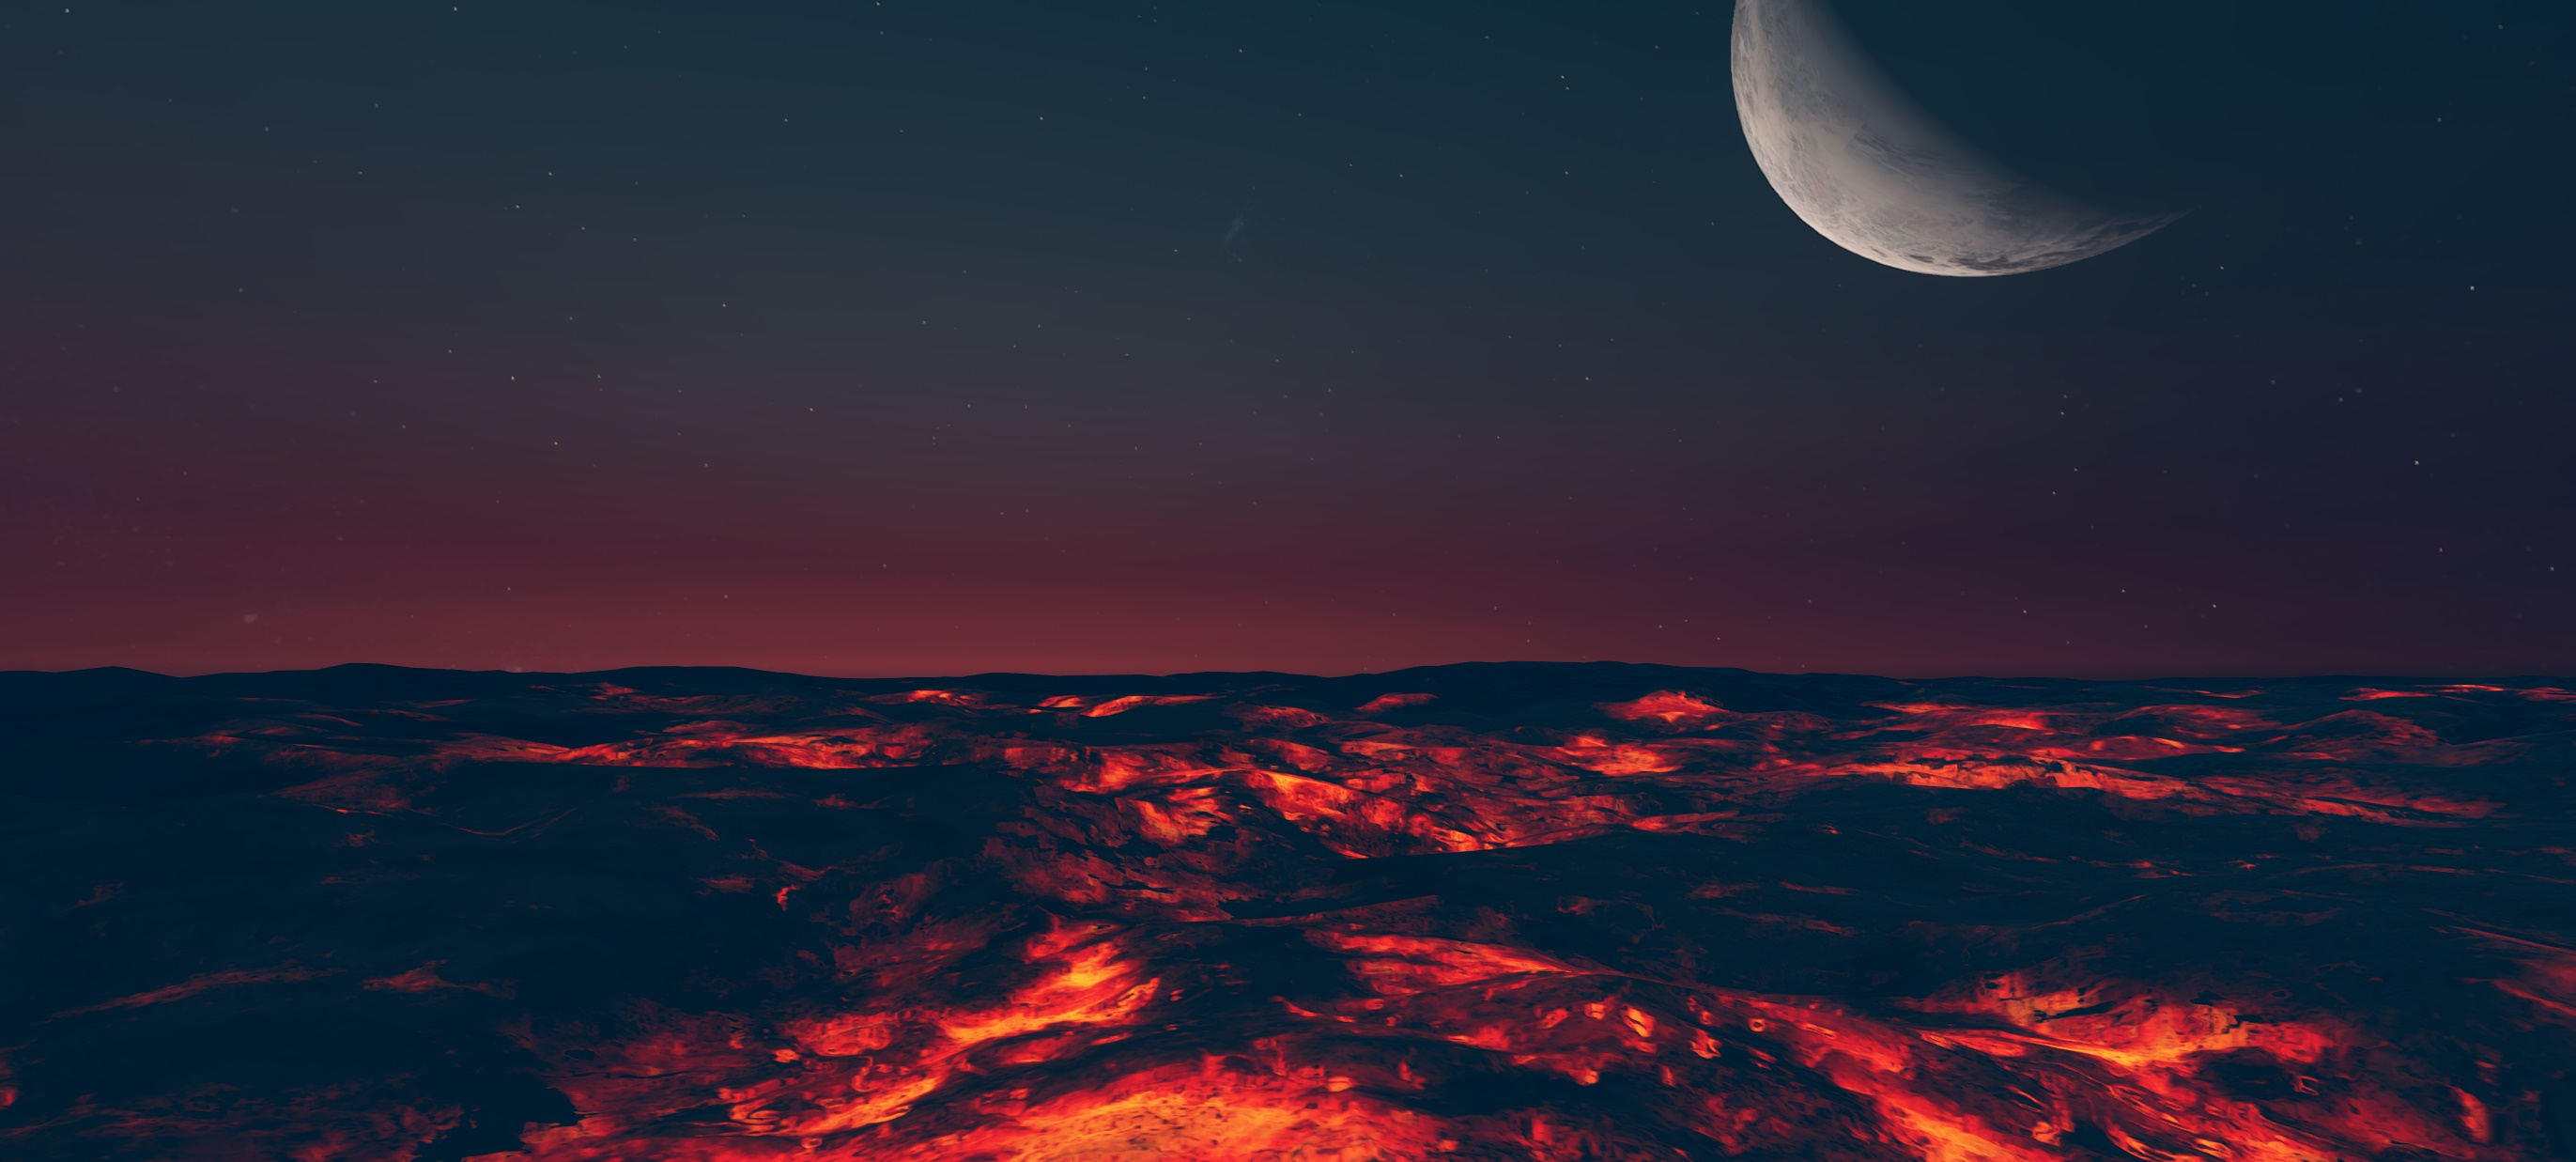 Lava Word in Planet Nomads at Night